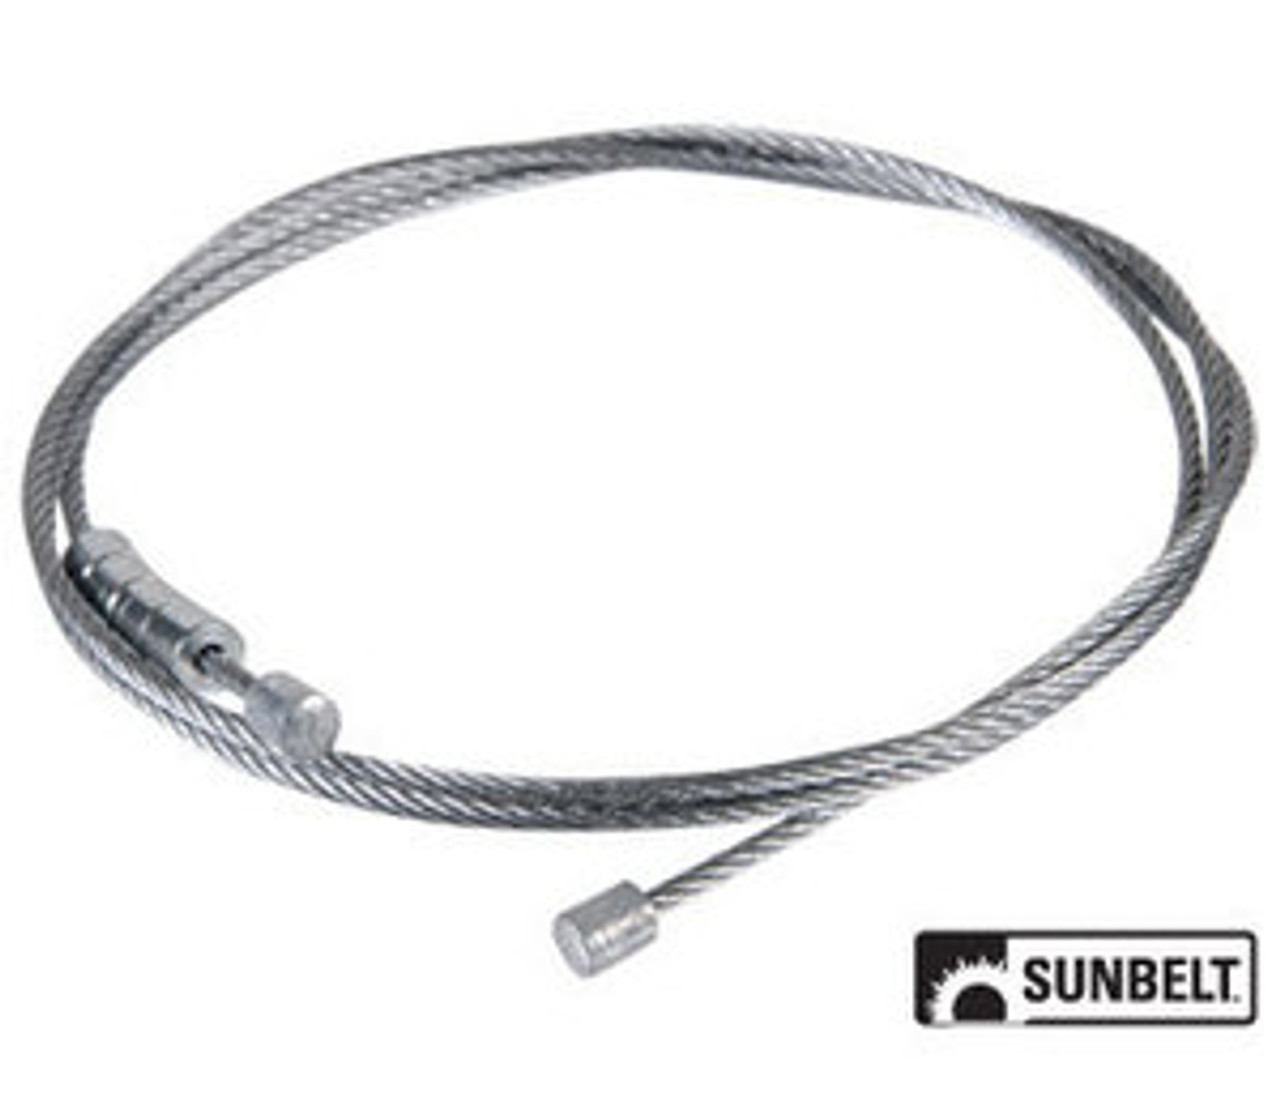 Oregon Small Eng Brake Cable for Snapper 12425